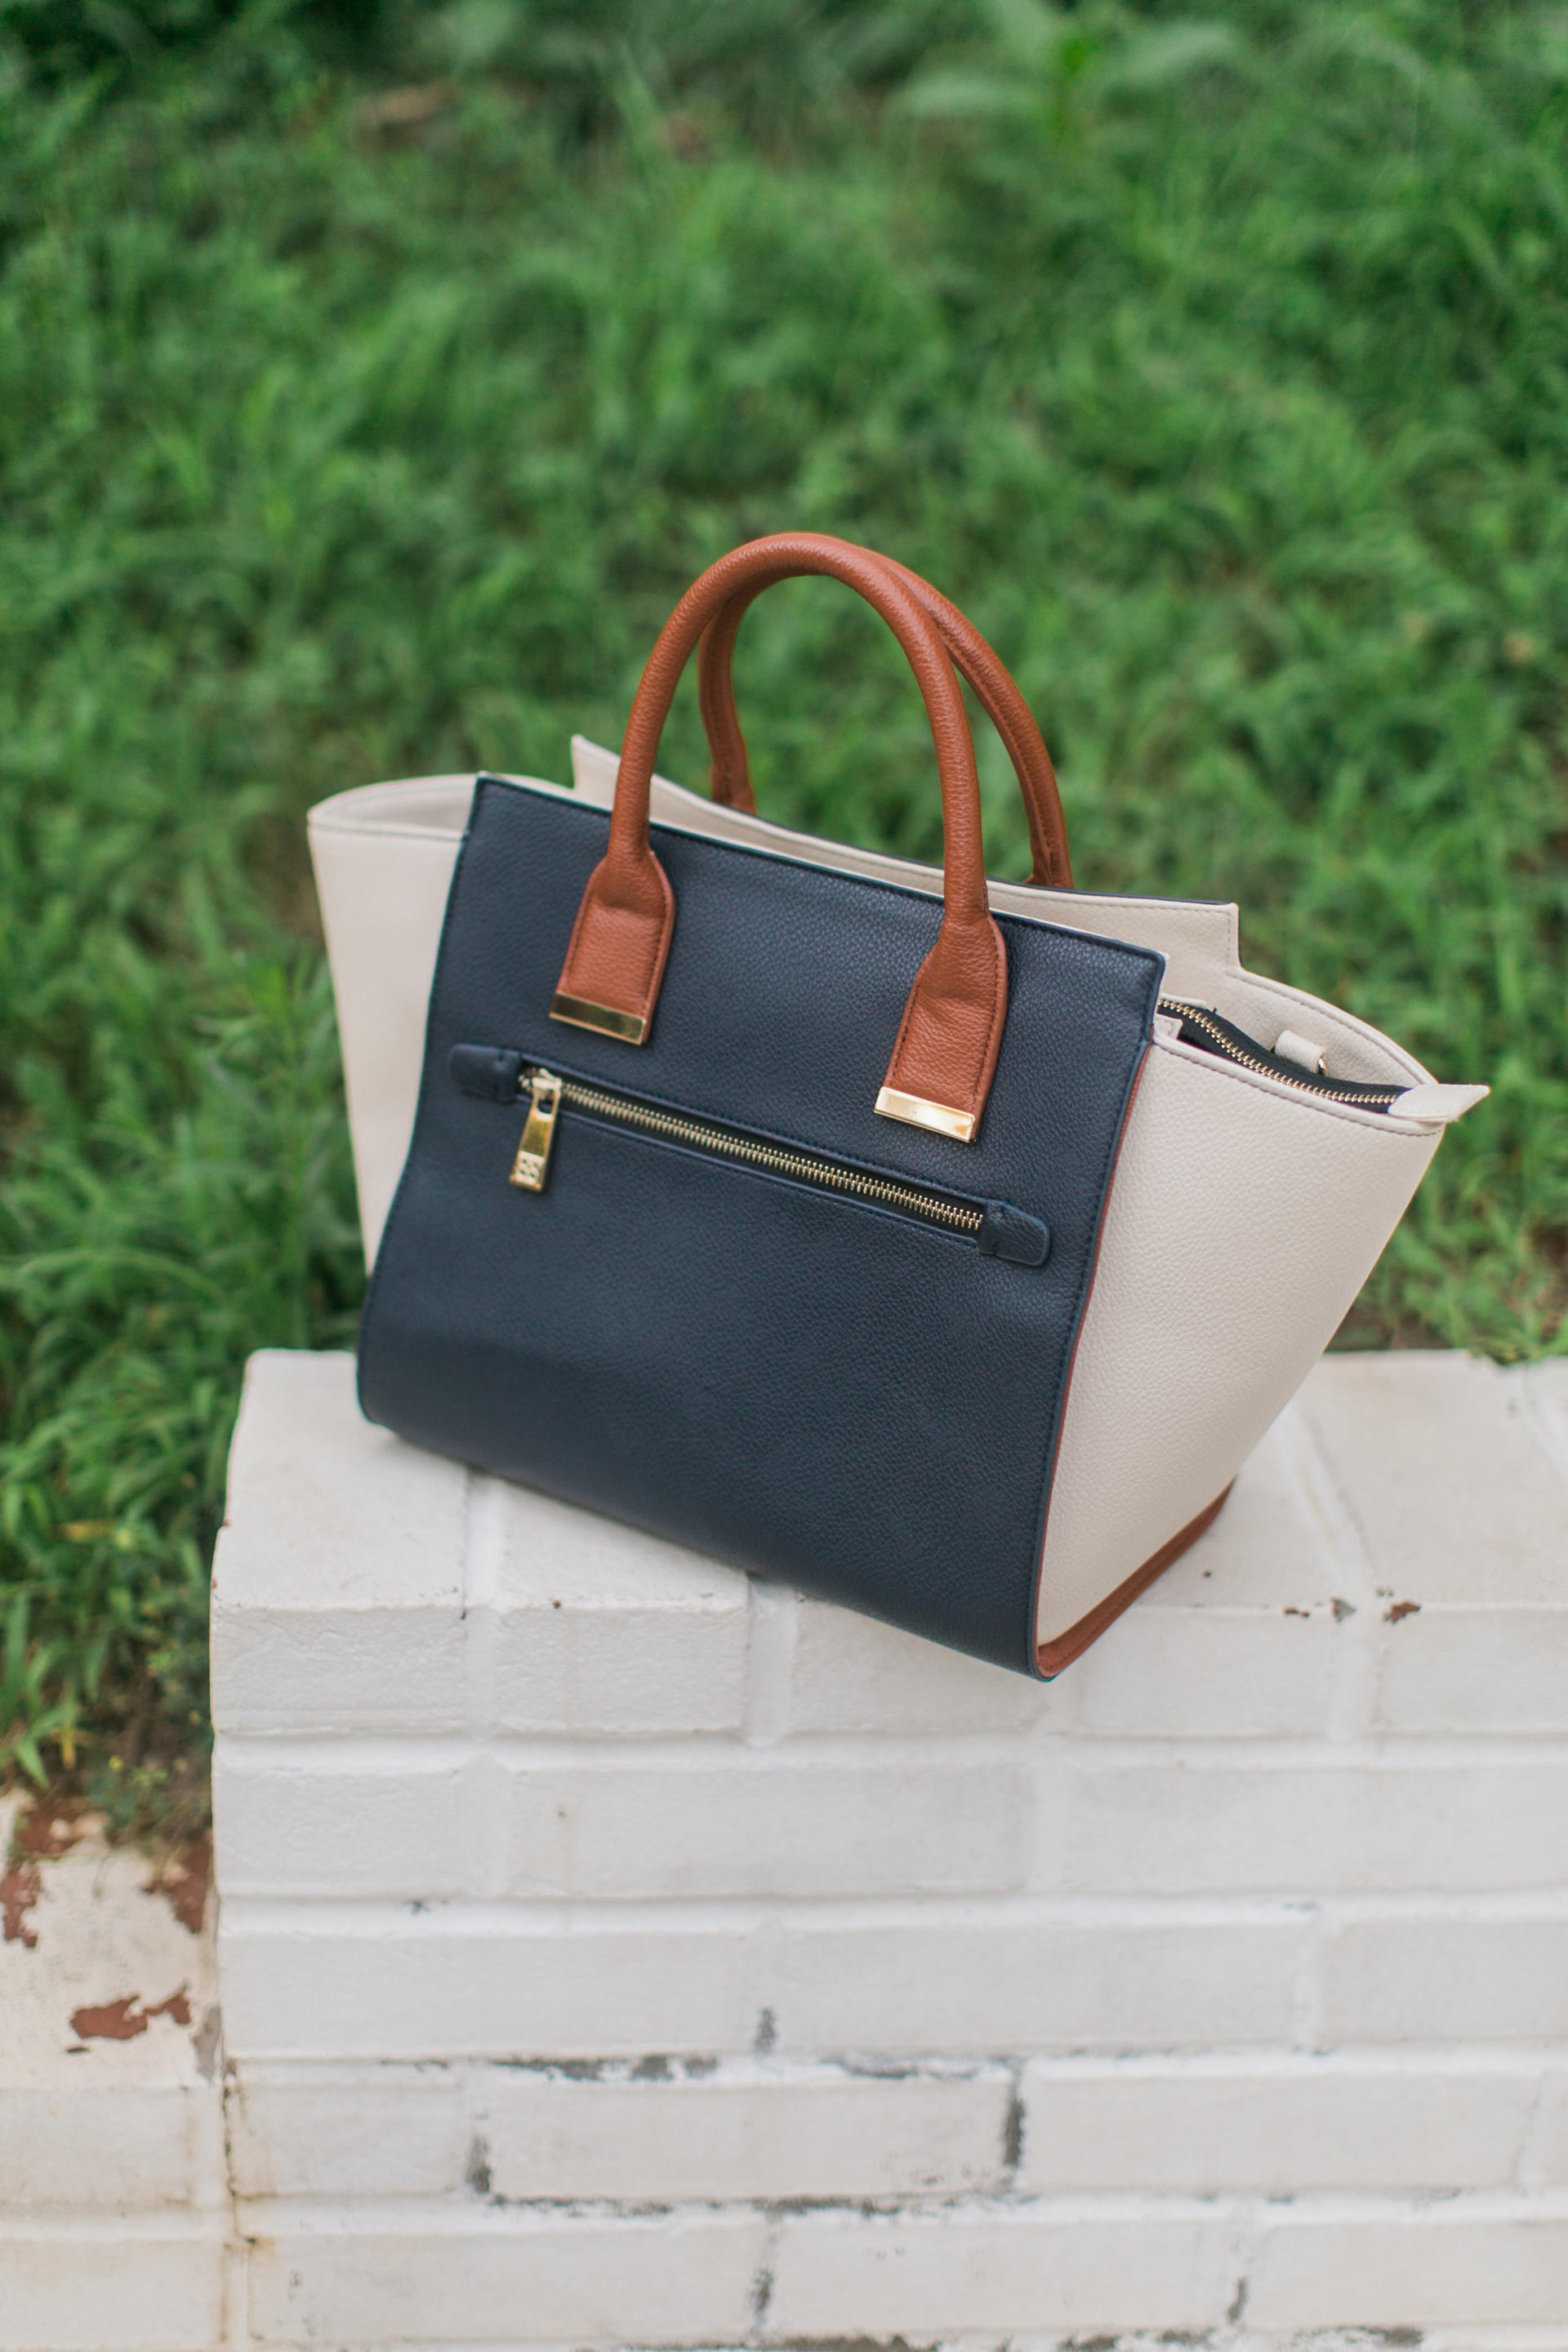 STYLE: Falling Into Reformation with 88 Handbags